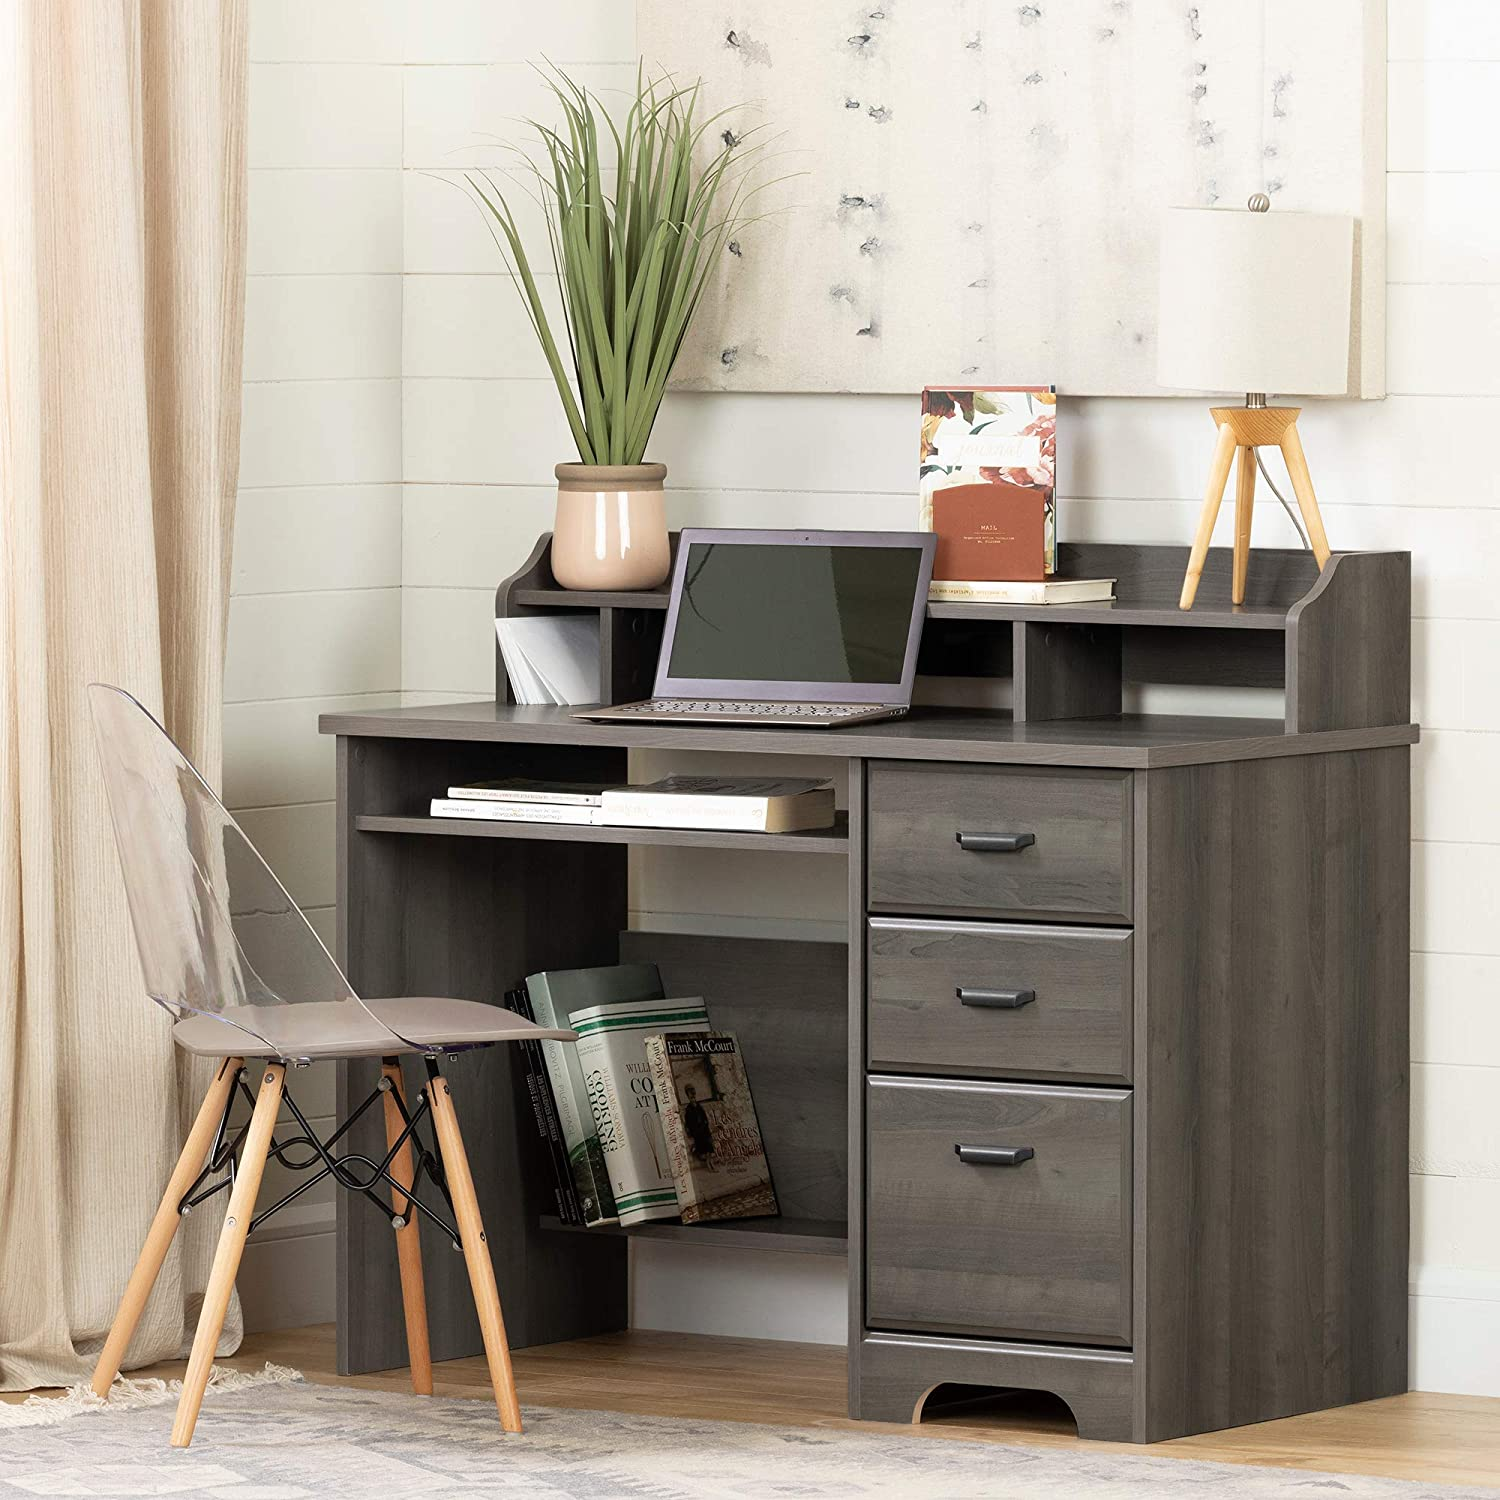 Weathered Oak South Shore Versa Computer Desk with Hutch